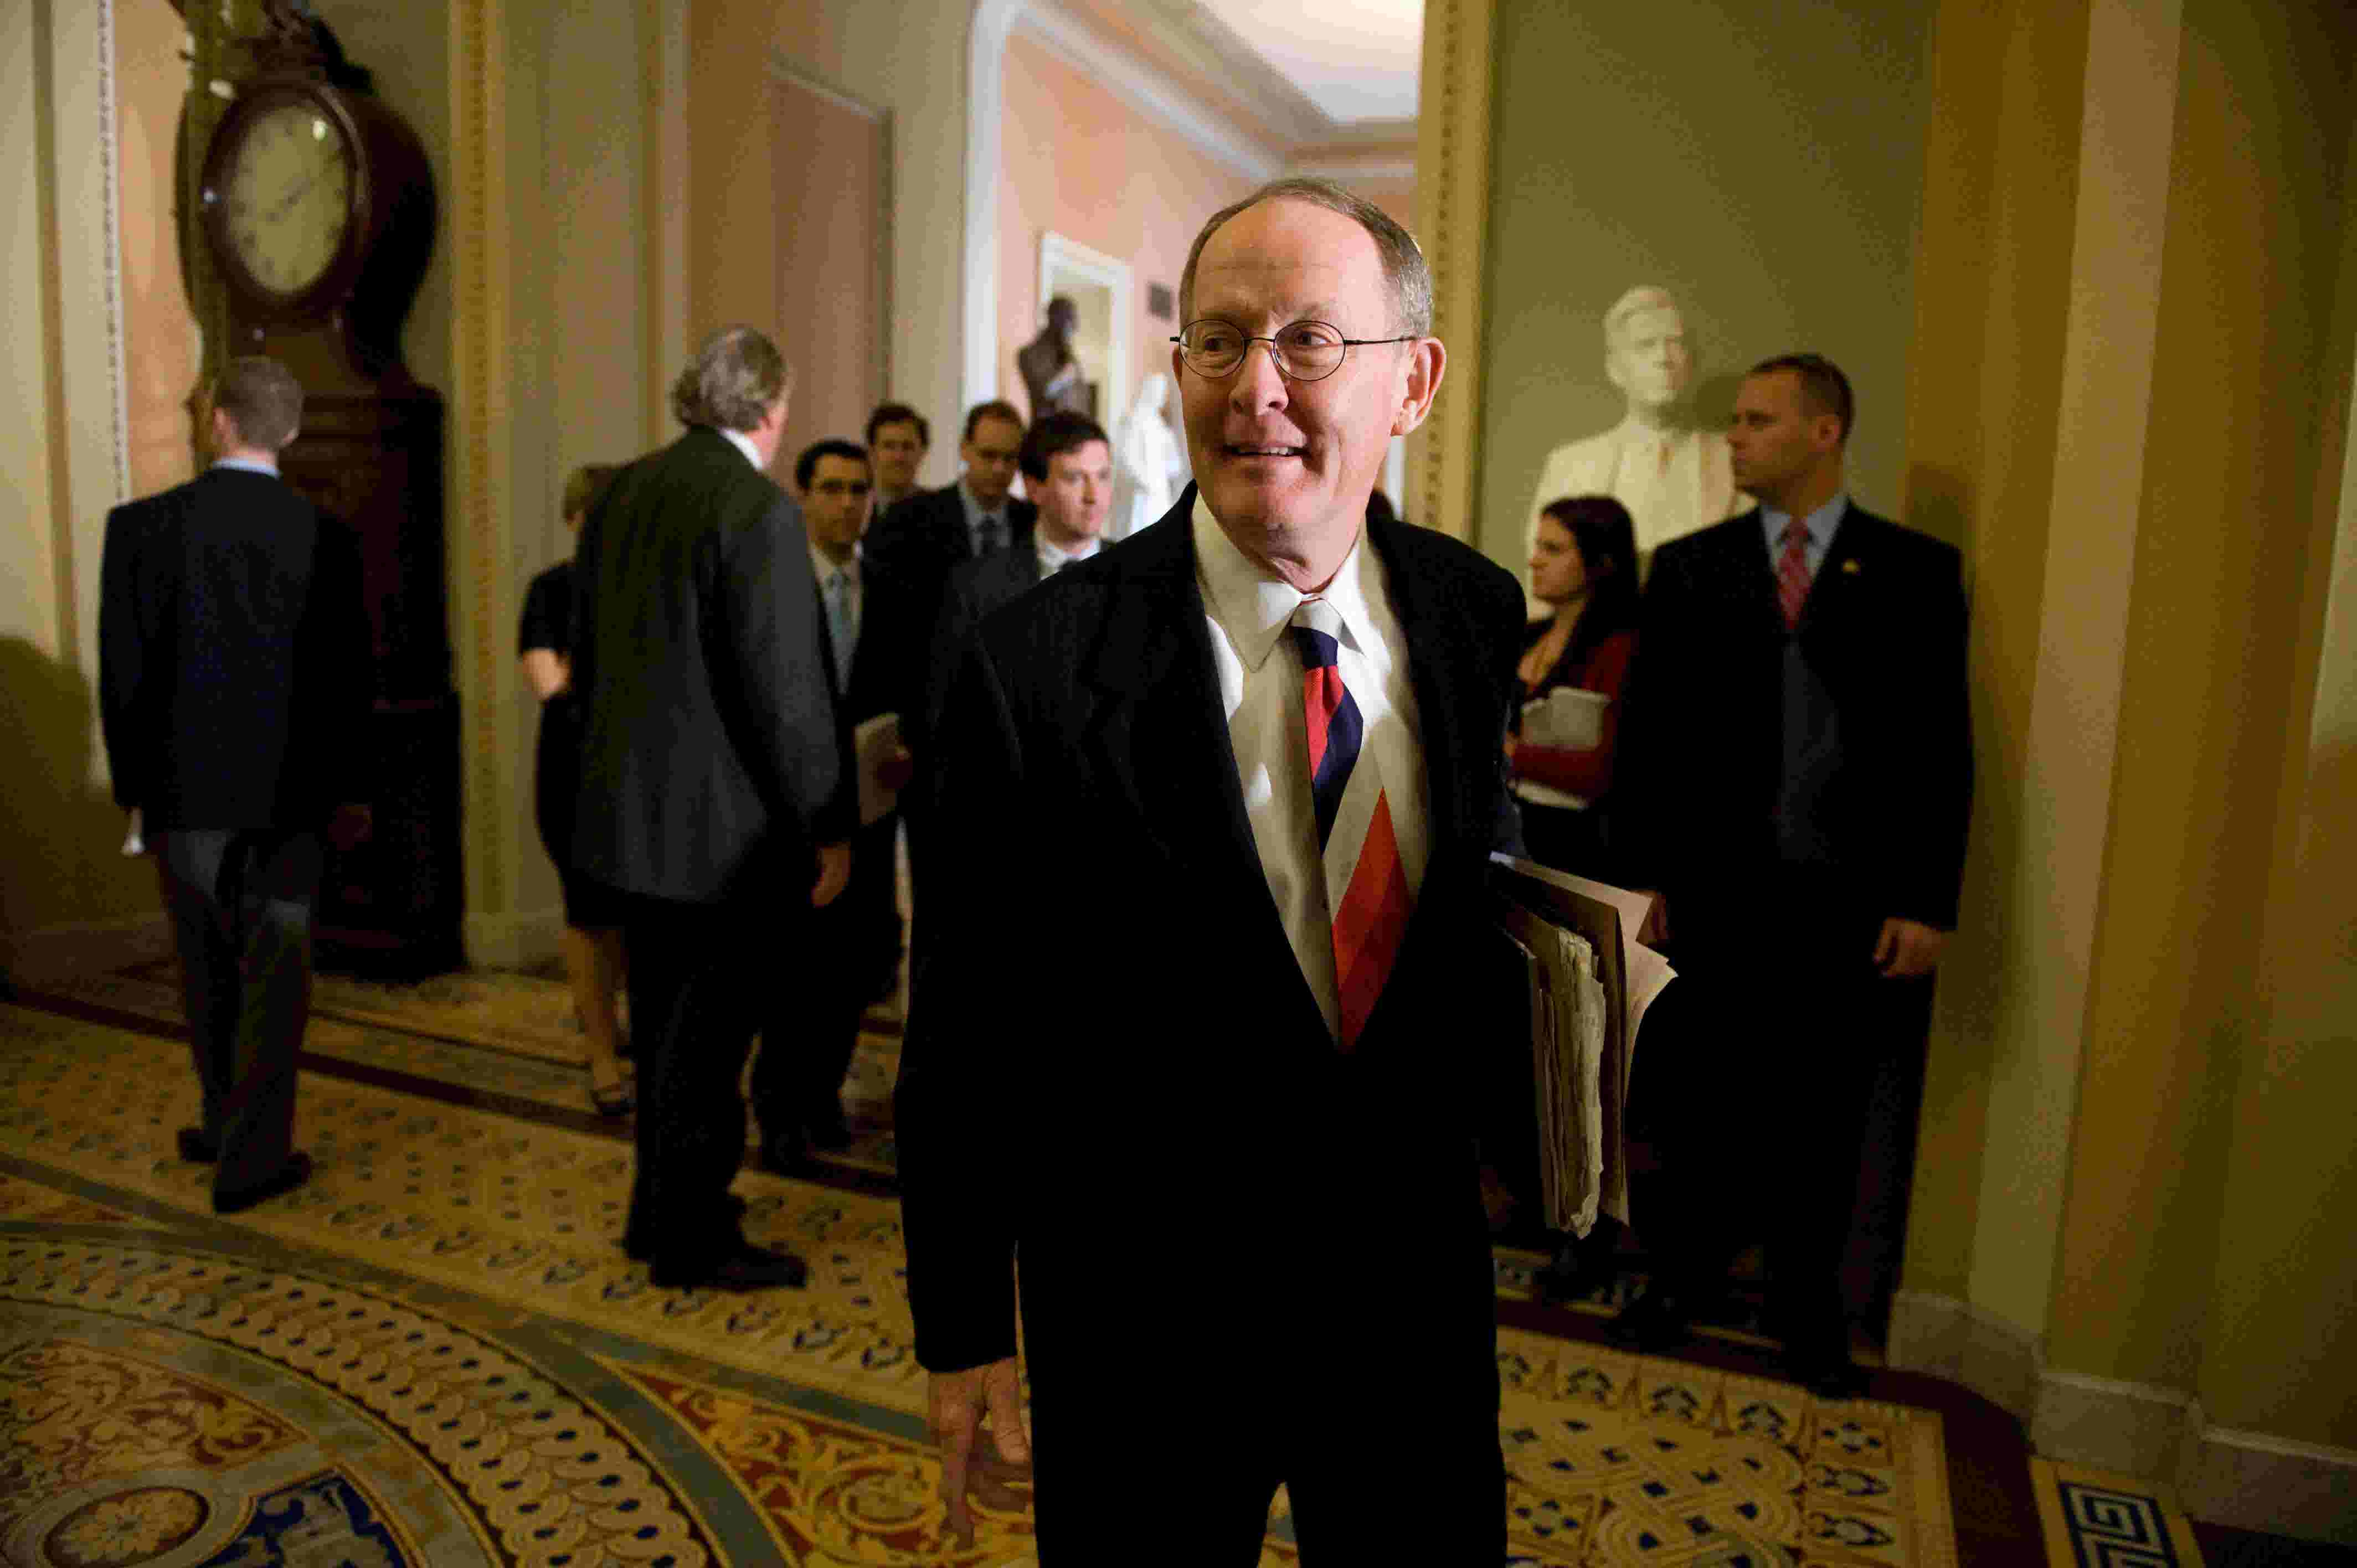 Lamar Alexander has put his legacy at risk | Opinion